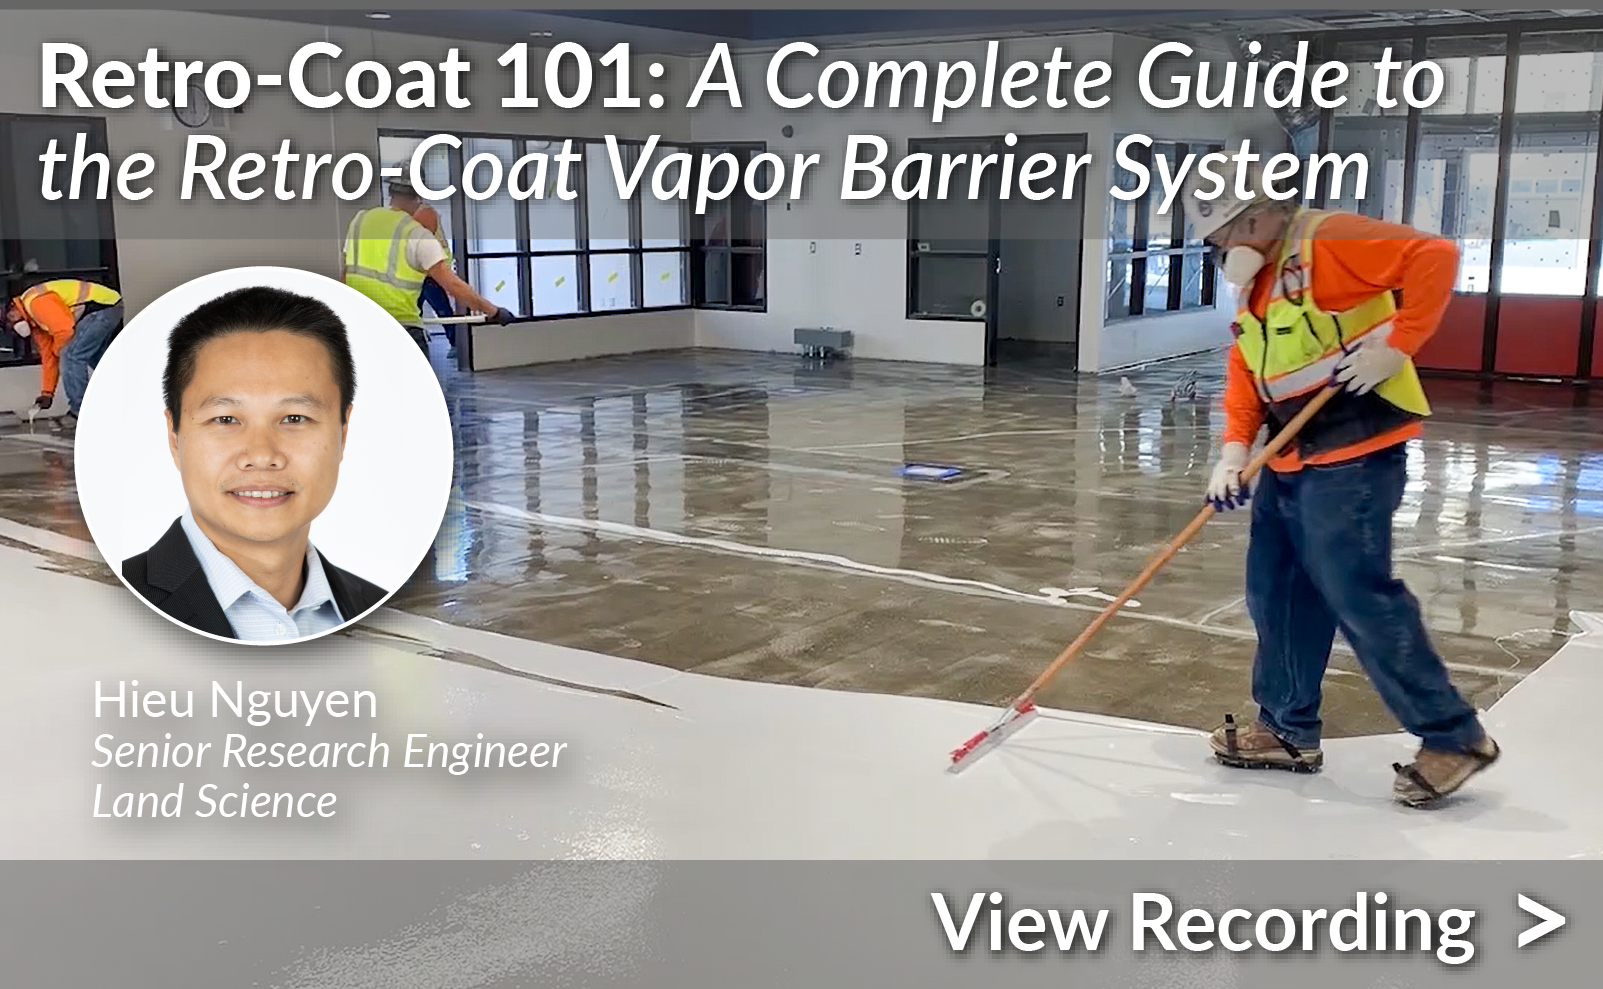 Retro-Coat 101: A Complete Guide to the Retro-Coat Vapor Barrier System